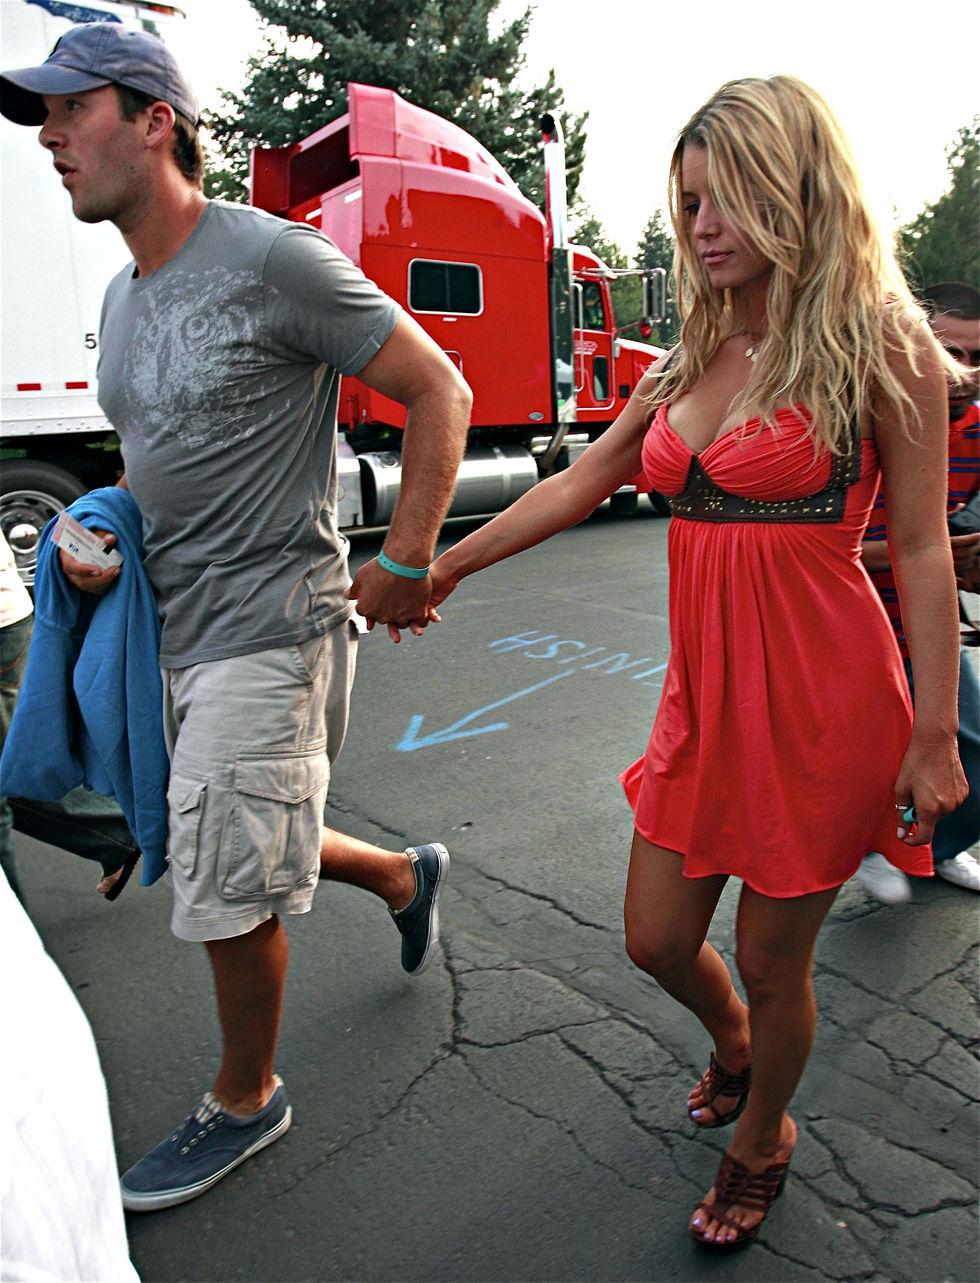 jessica-simpson-cleavage-candids-at-the-heart-concert-in-lake-tahoe-01